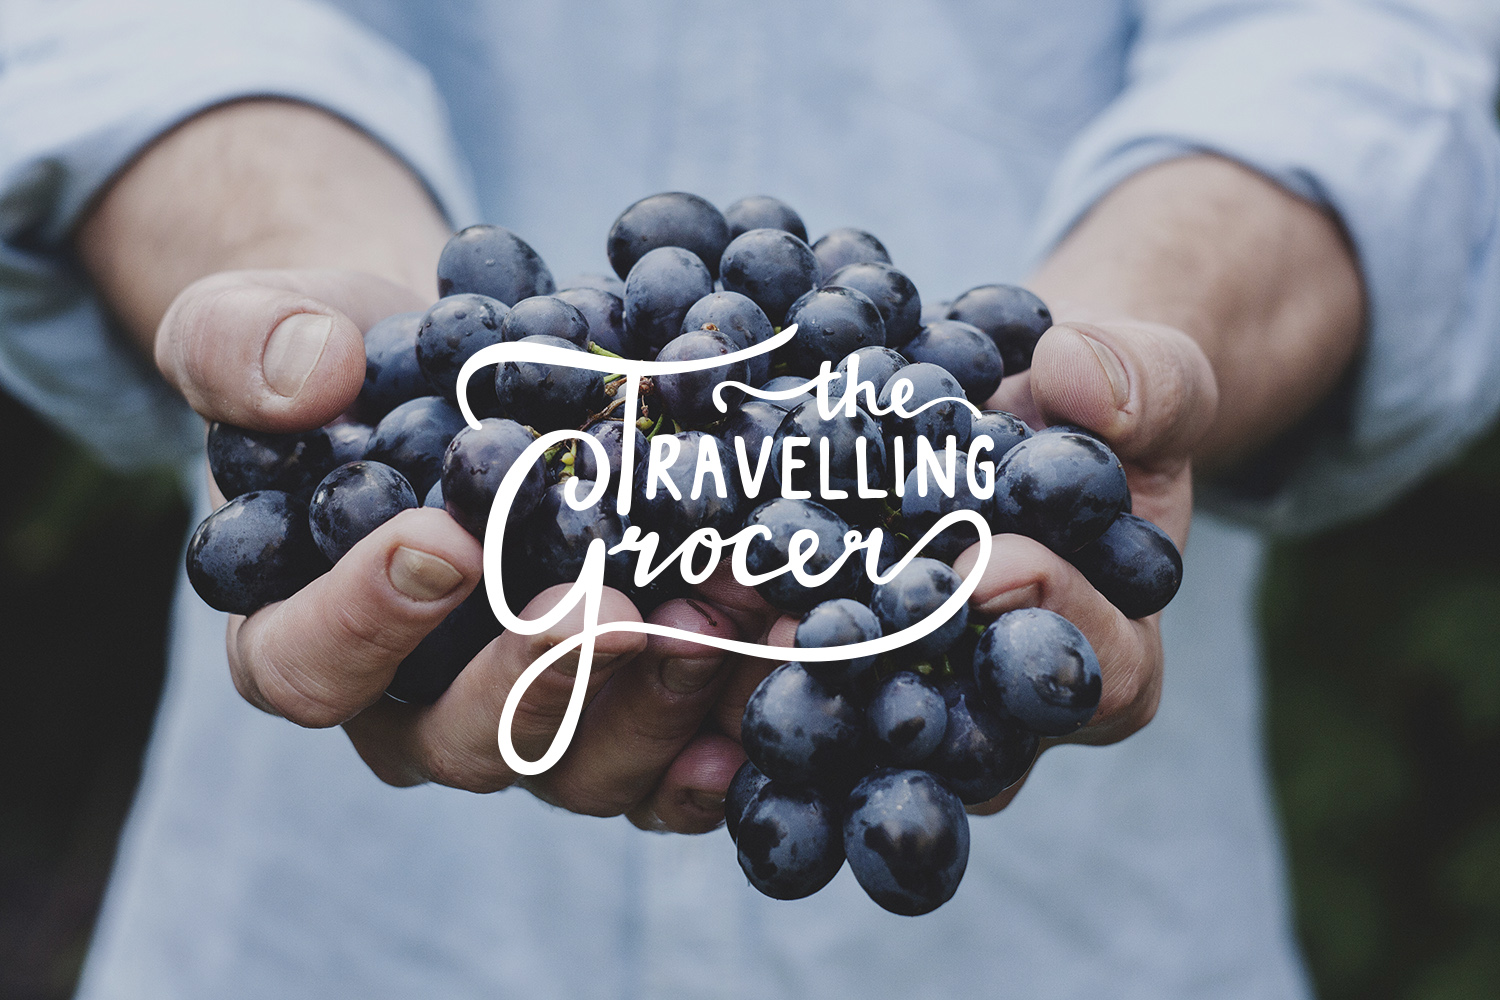 THE TRAVELLING GROCER